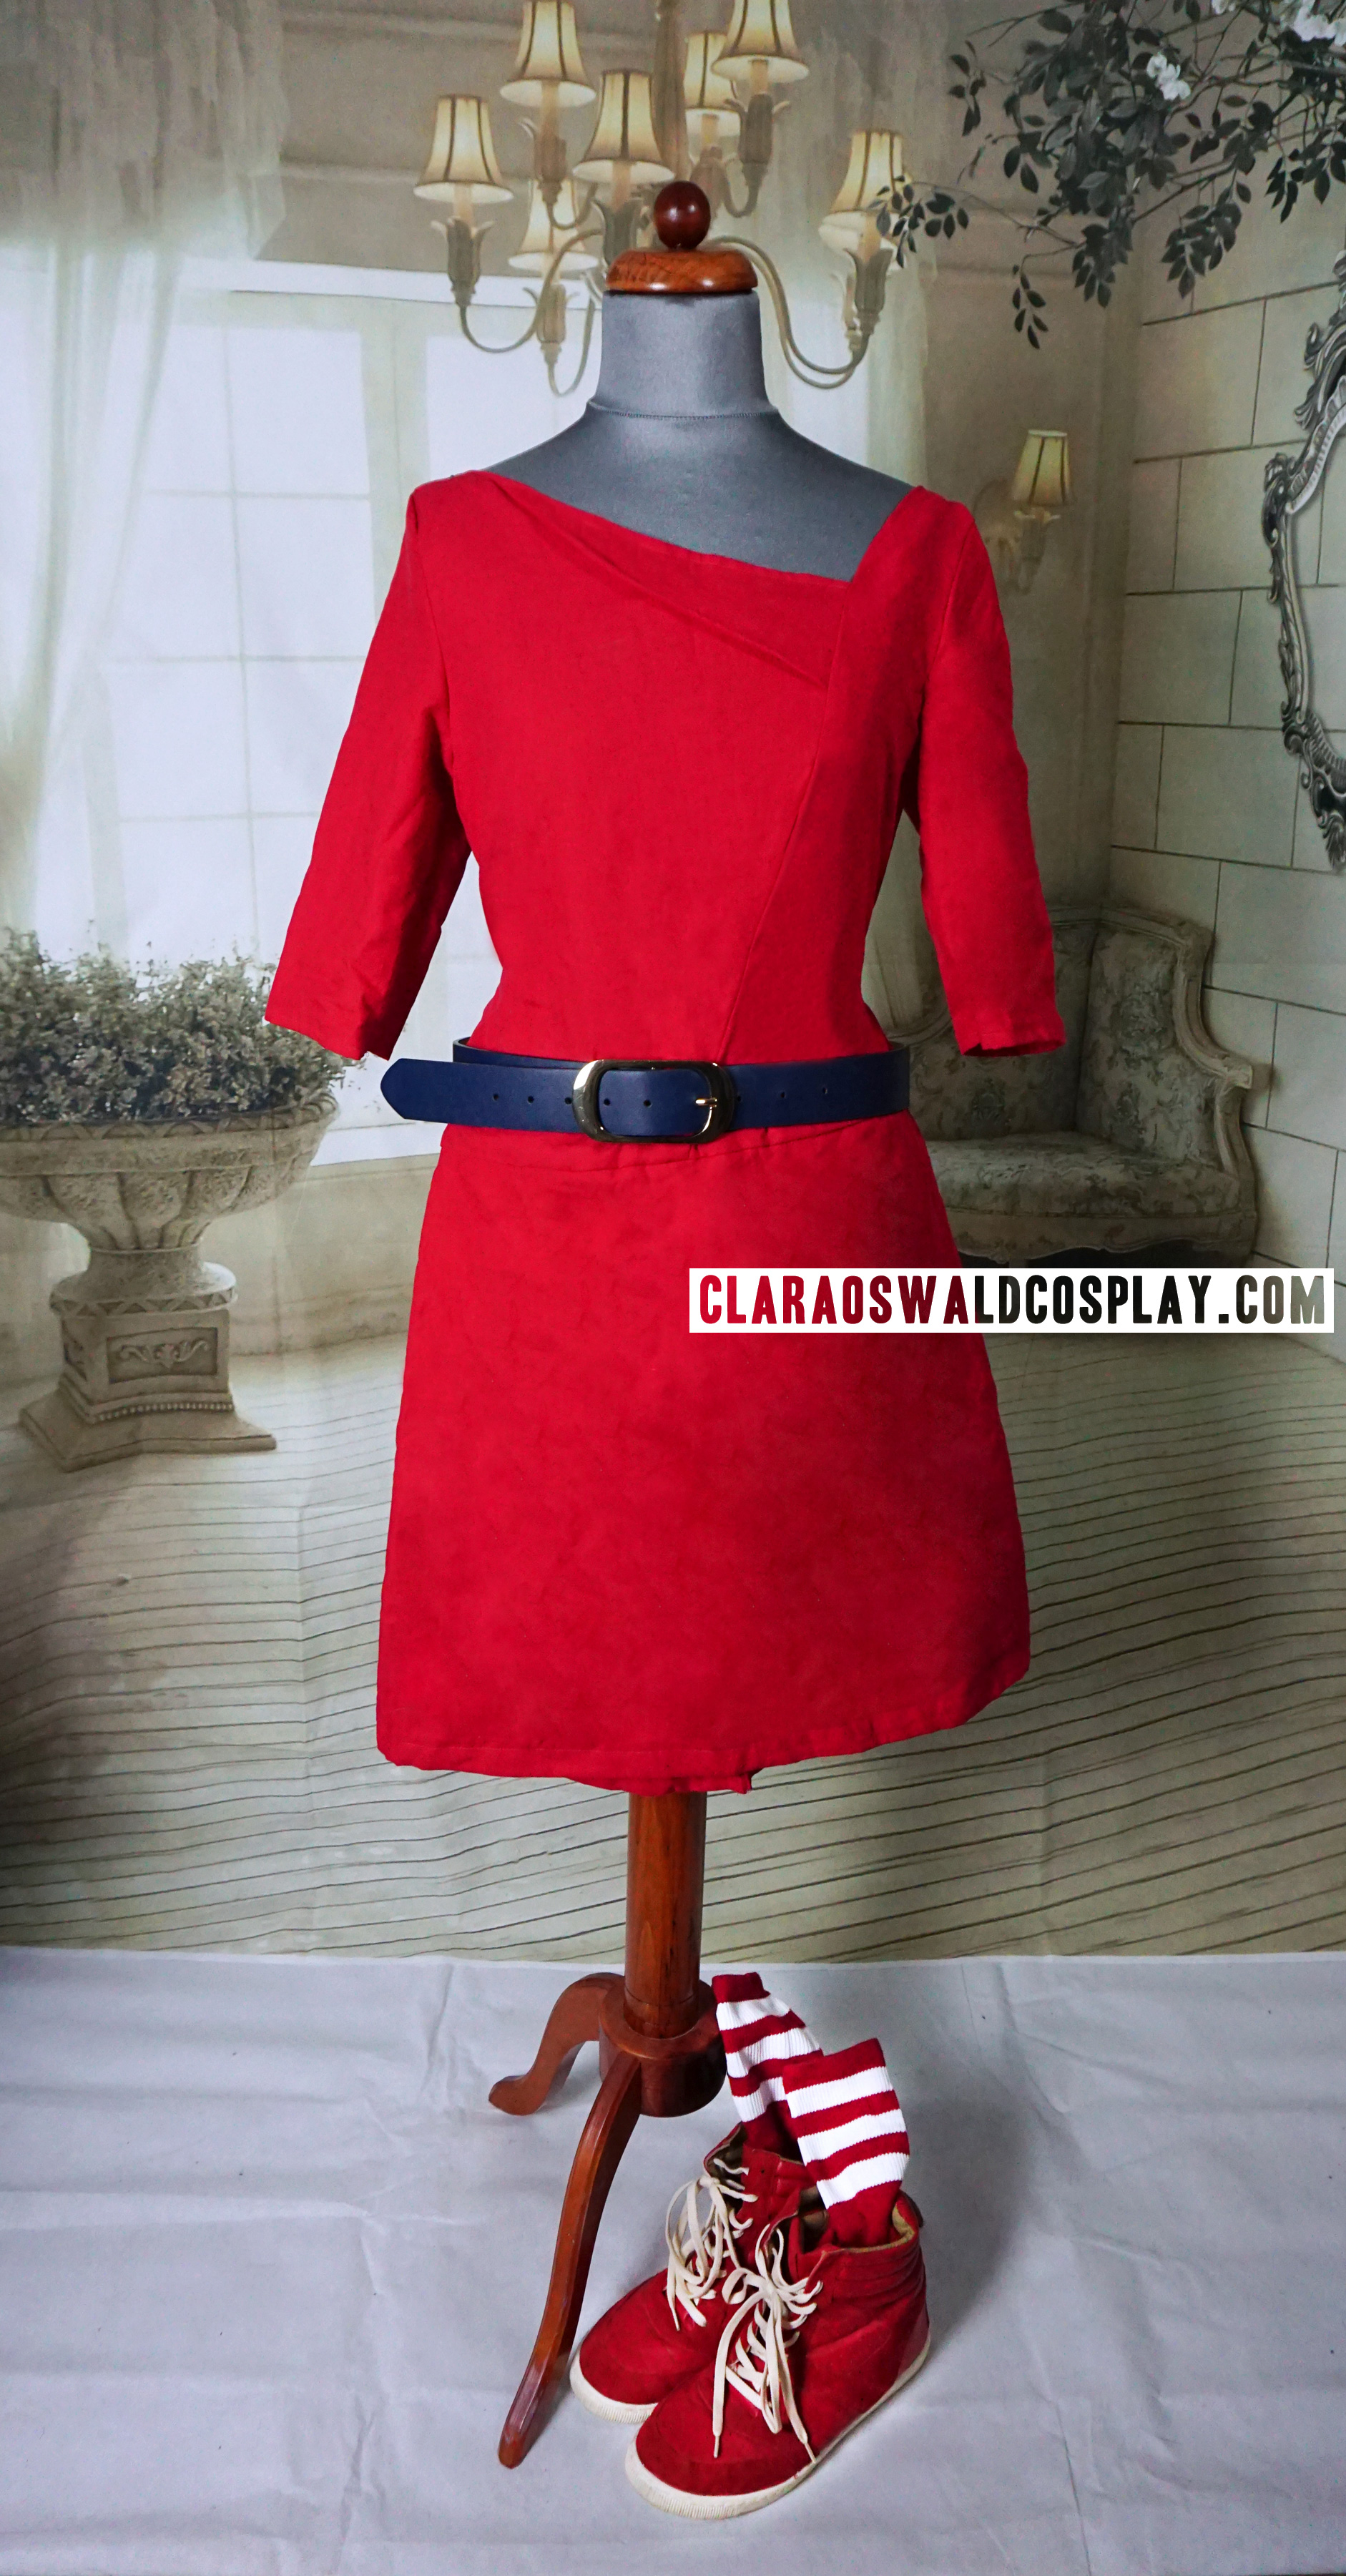 Clara / Oswin Oswald's Asylum of the Daleks outfit featuring the custom made red dress, American Apparel Calf-High Socks and River Island Red Wedge Sneakers